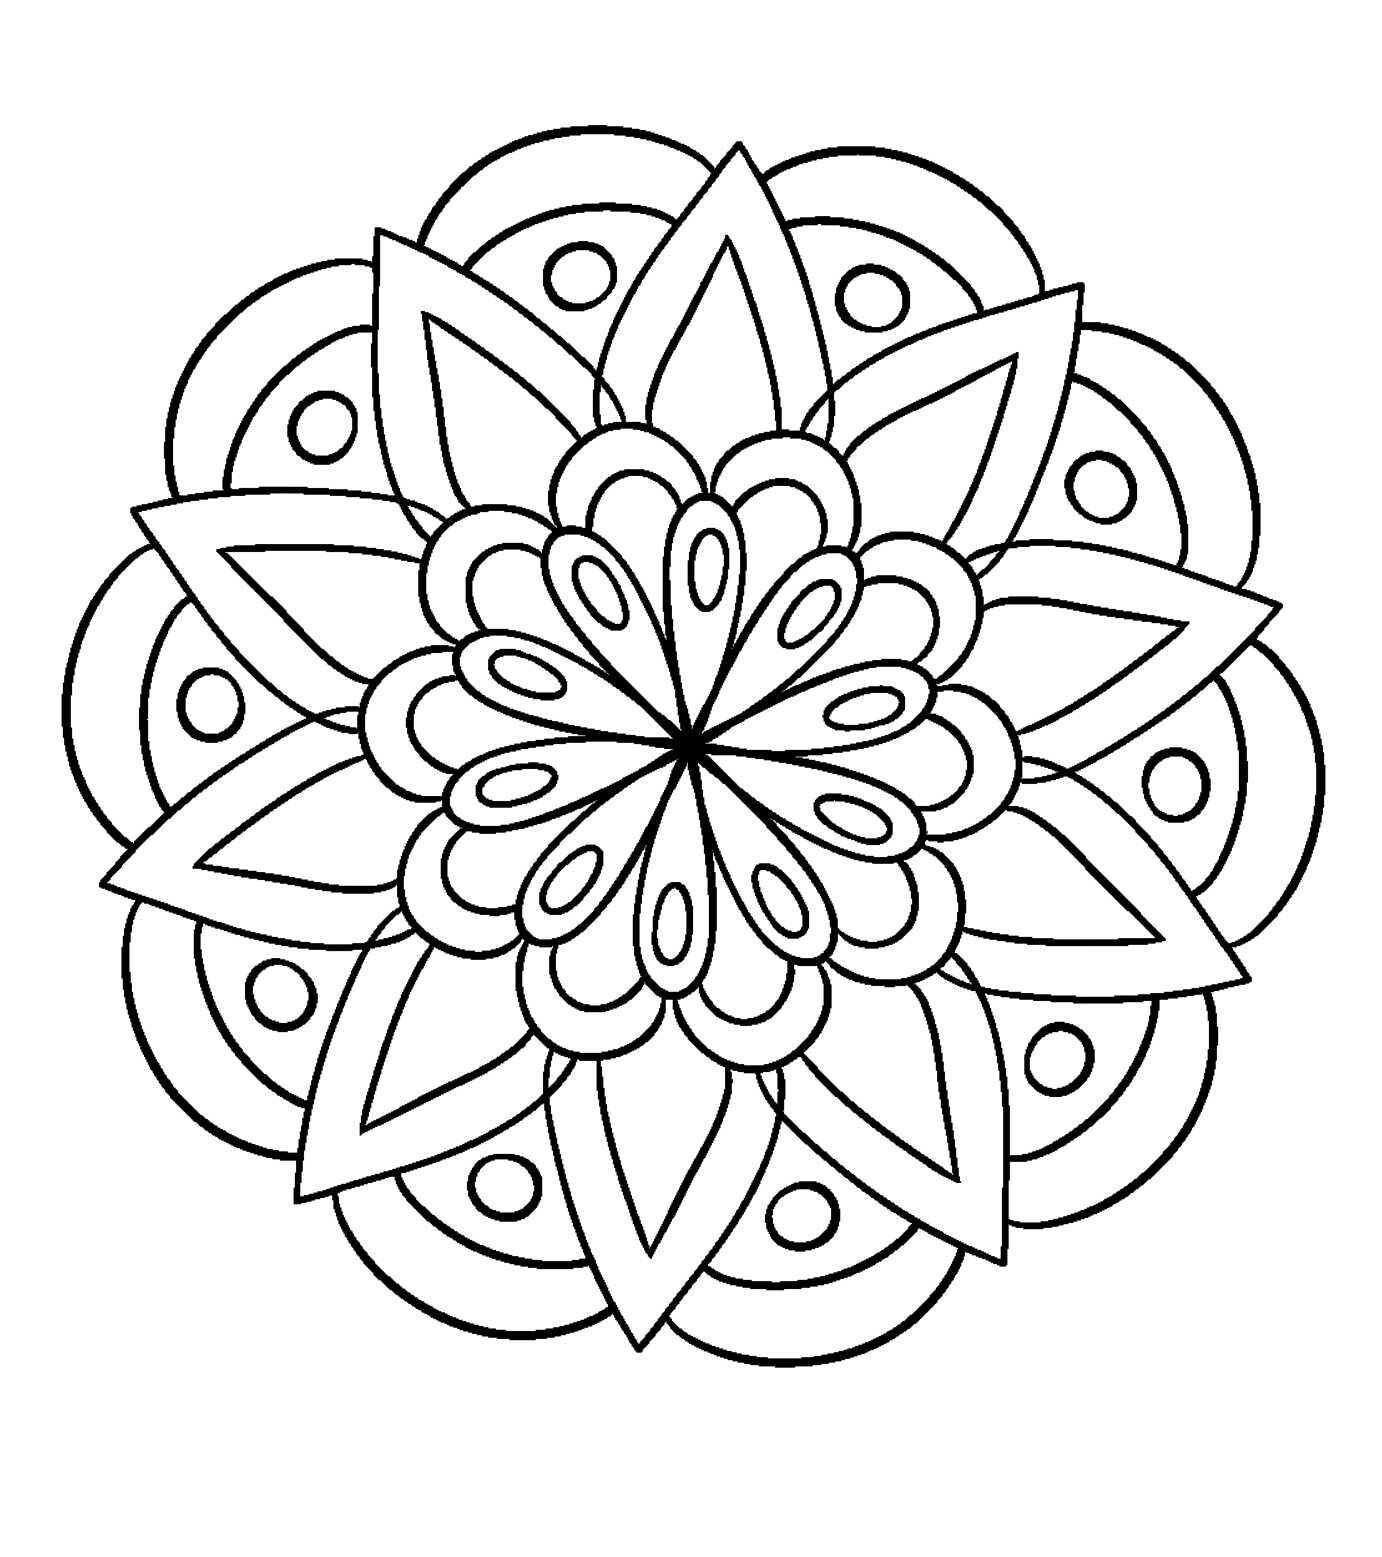 Pin By Carmen Schneider On Art Mandala Coloring Pages Mandala Coloring Mandala